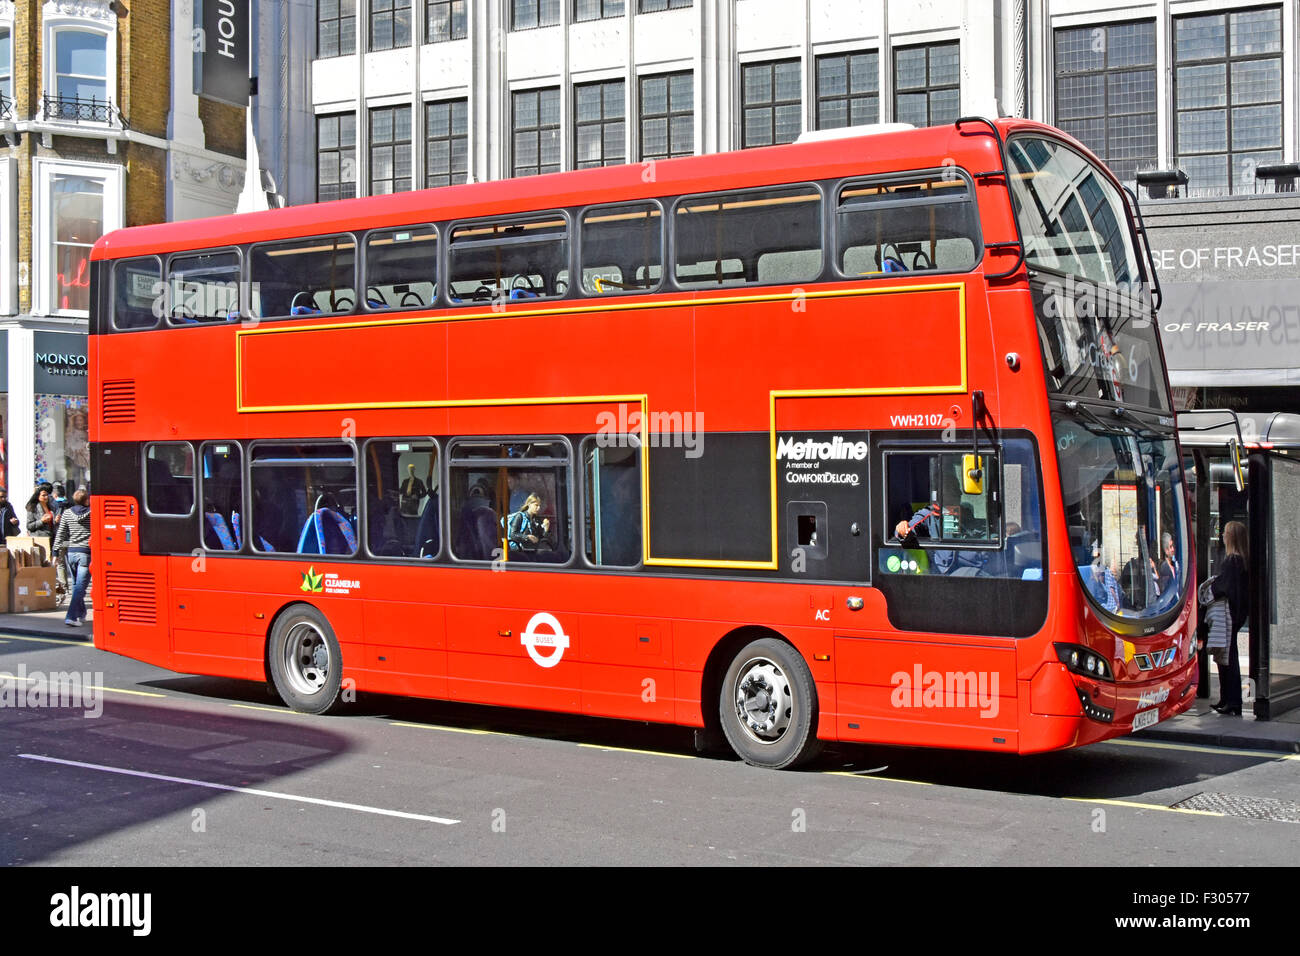 Metro Bus Cleaner : Red london double decker hybrid cleaner air bus operated